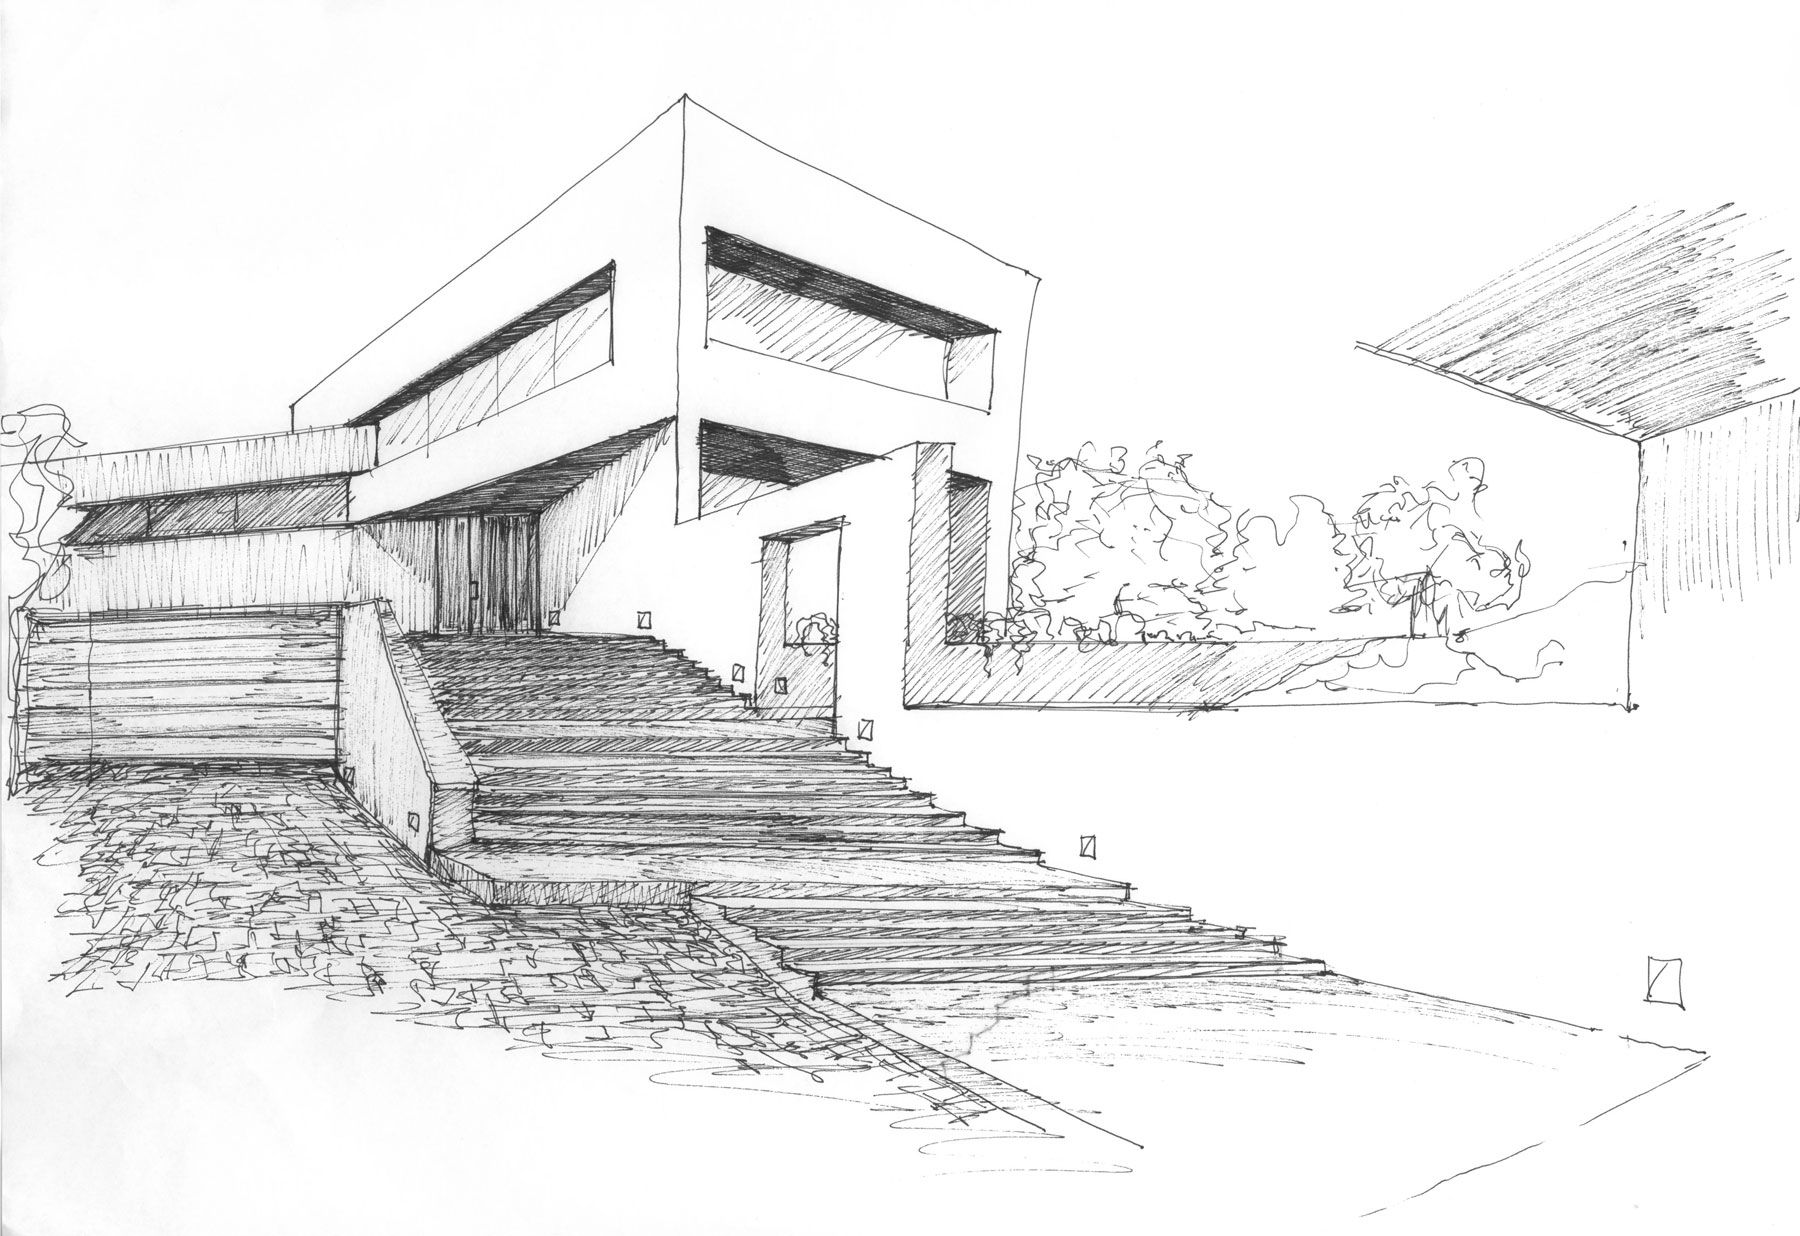 Valdemorillo residence modern architecture sketches Drawing modern houses